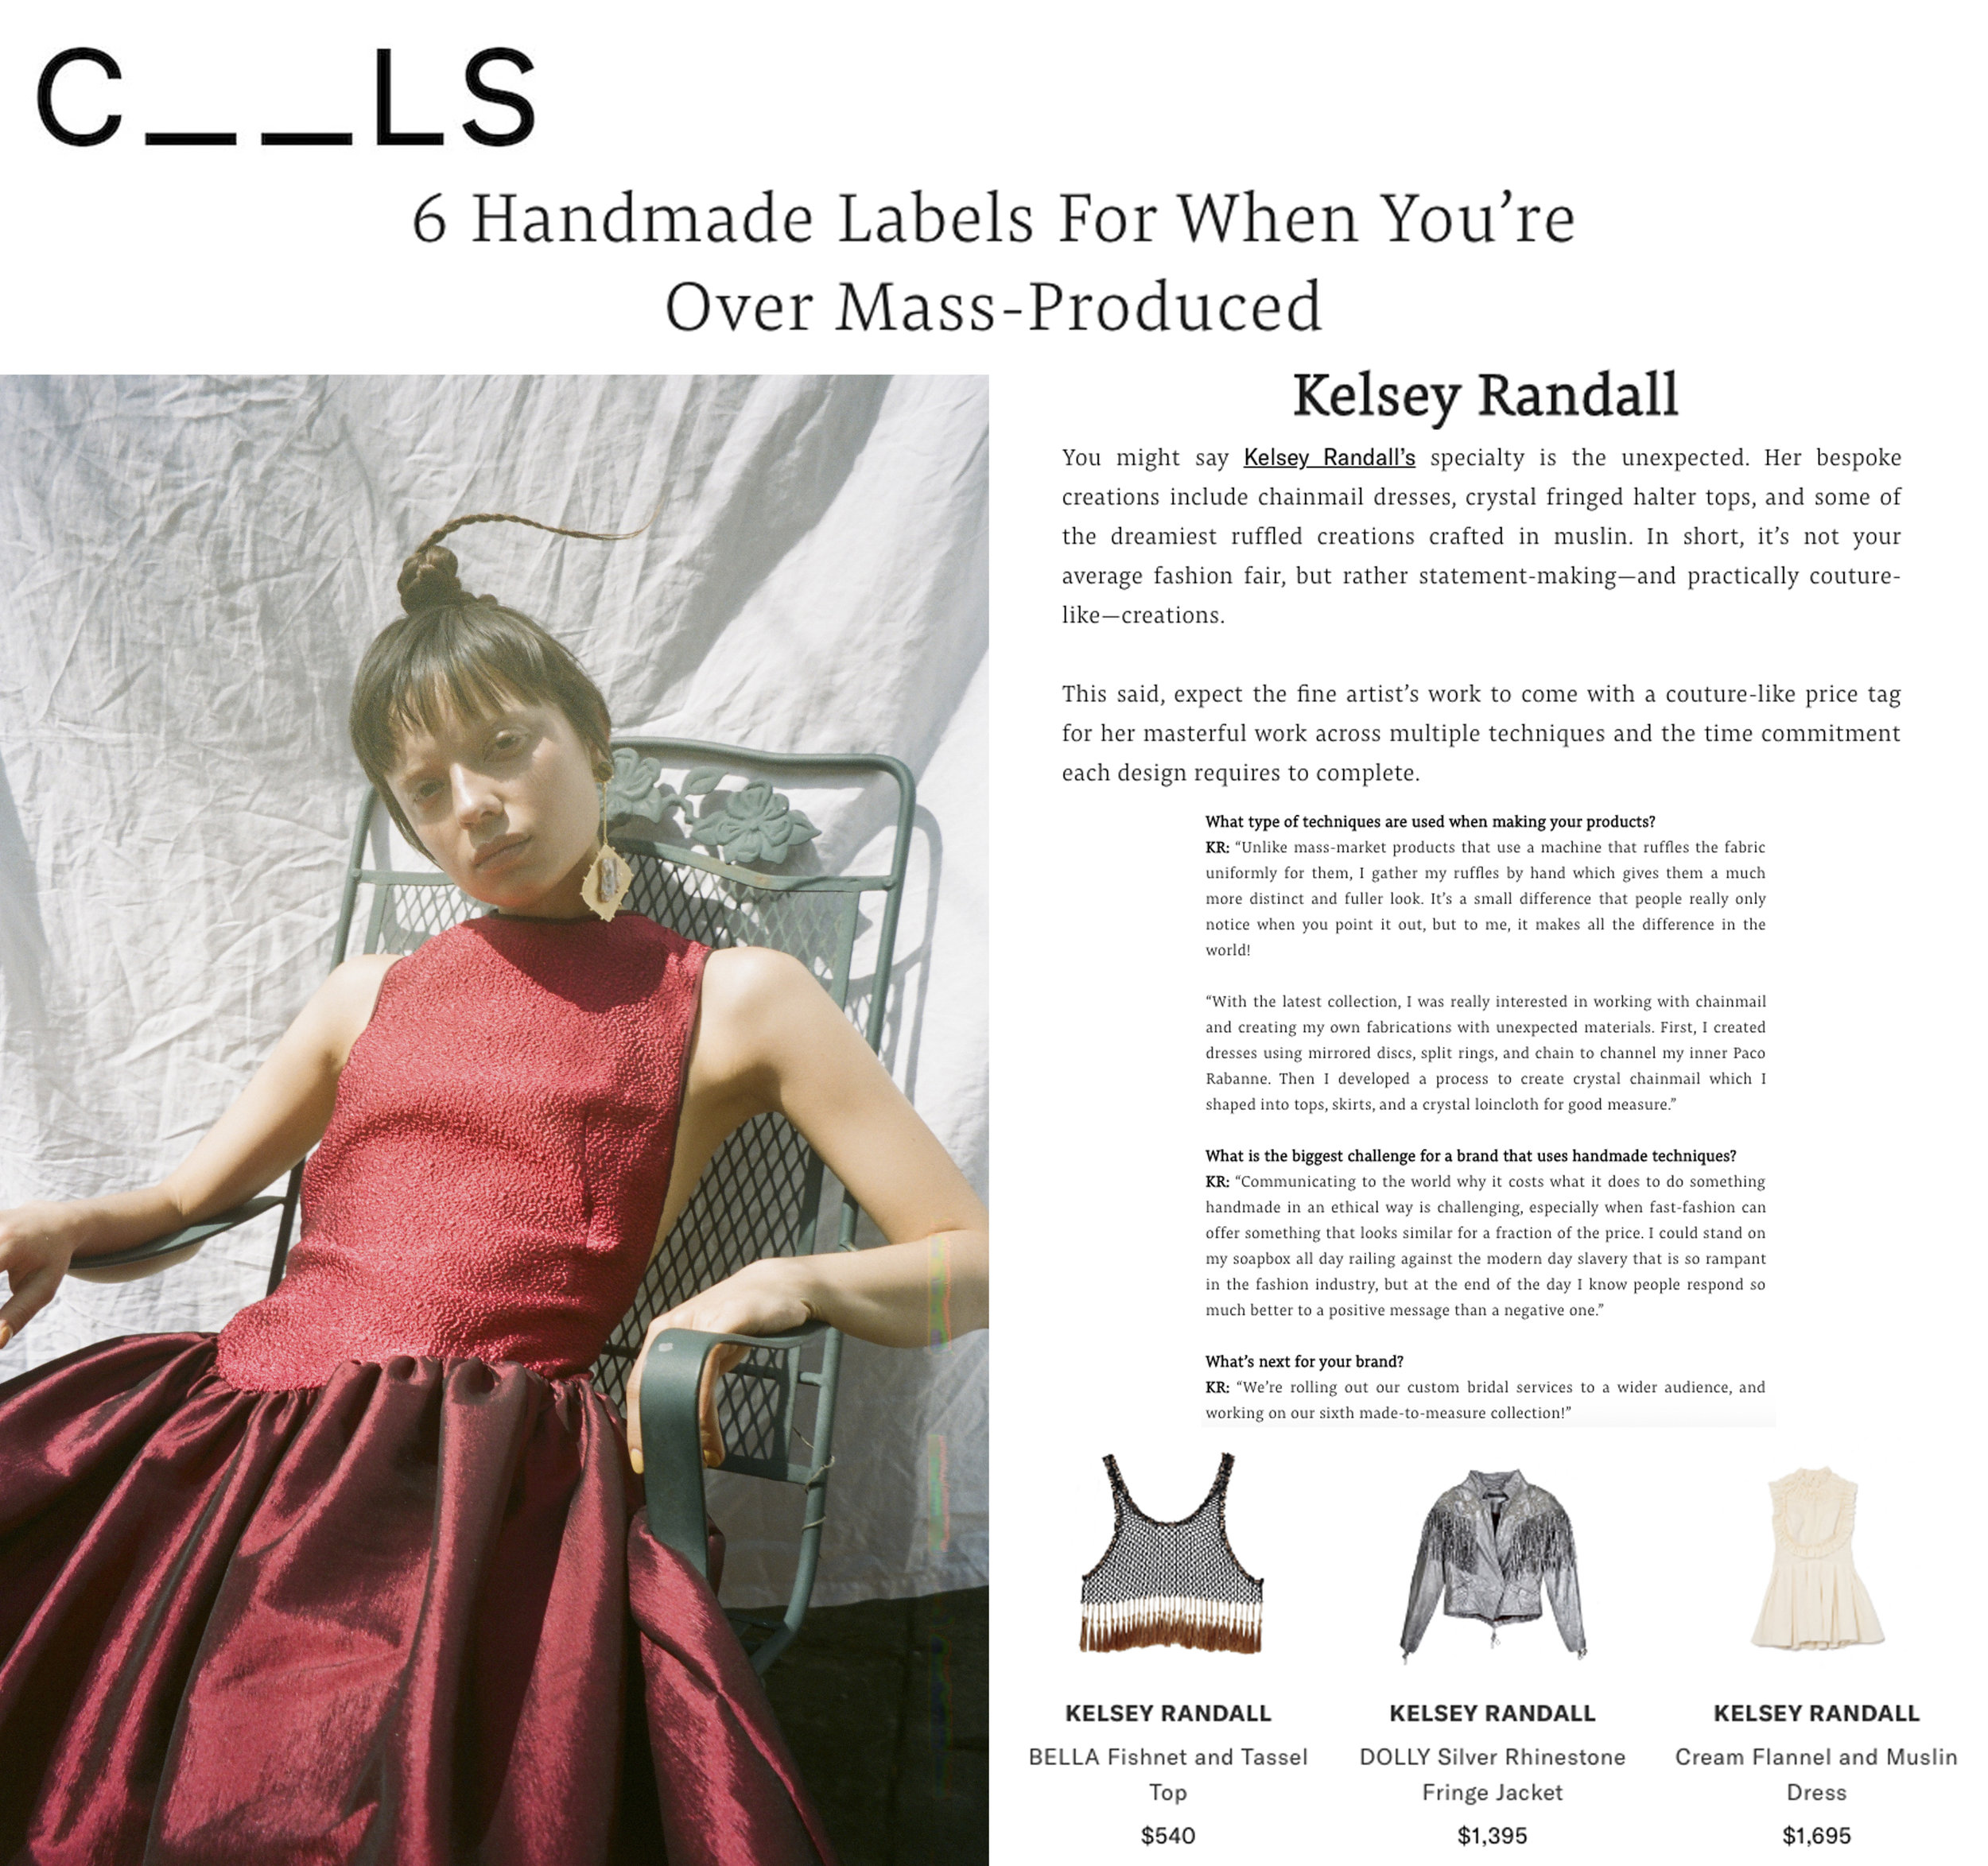 the cools fashion story handmade brands to watch handcrafted sustainable ethical fashion kelsey randall